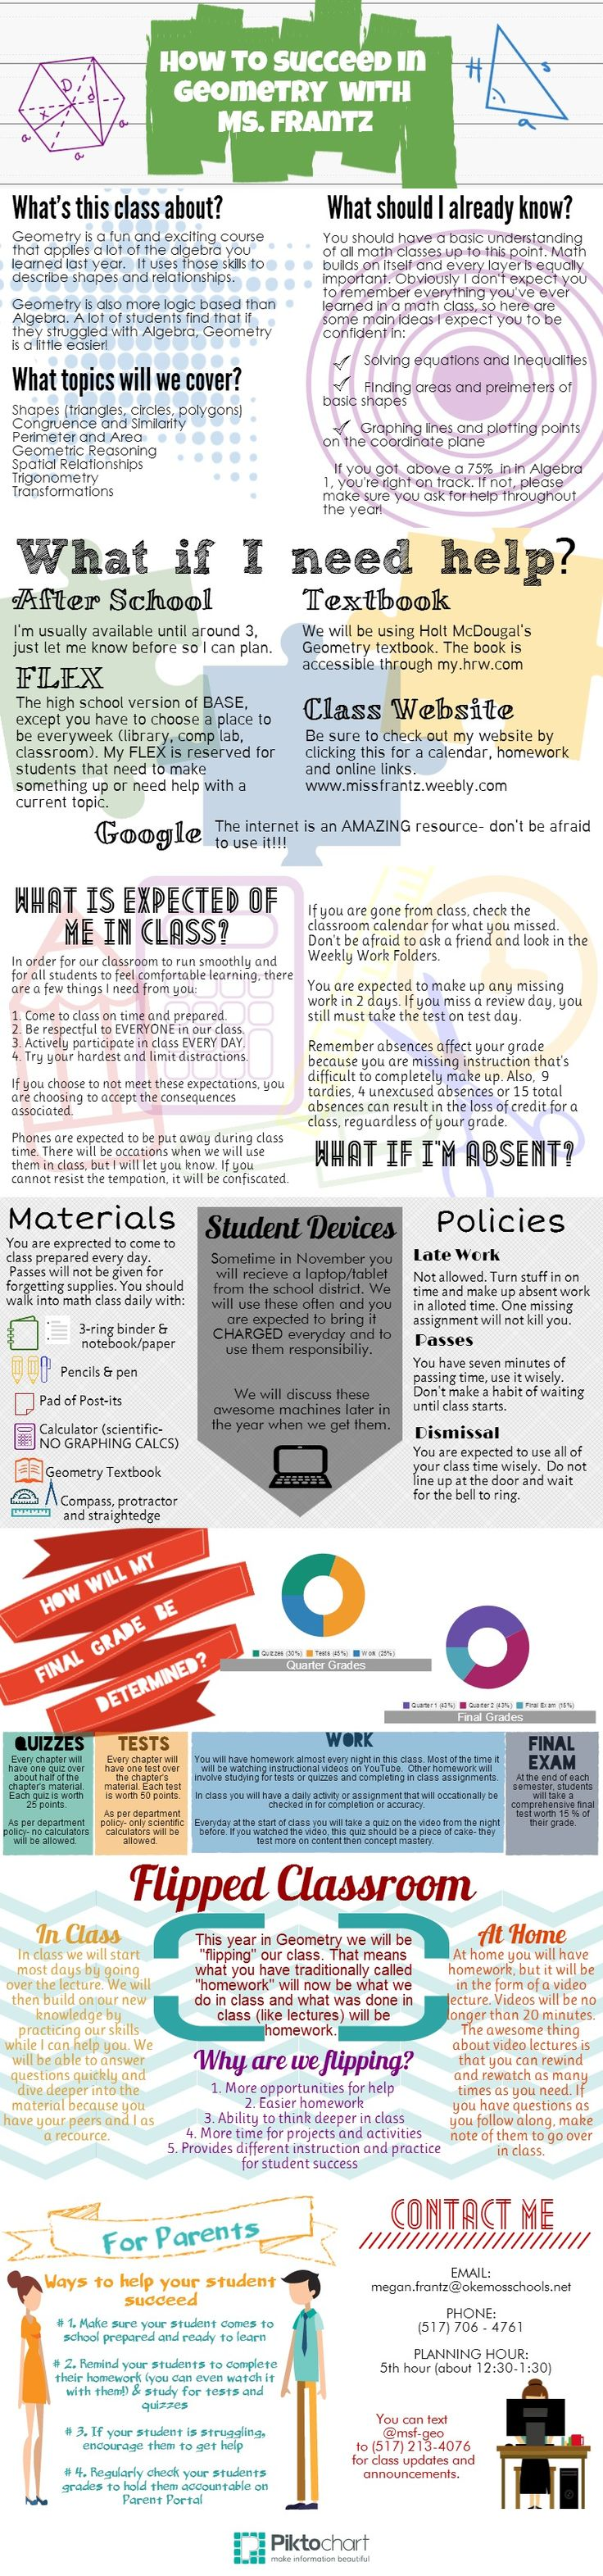 Ms. Frantz's Geometry Syllabus | @Piktochart Infographic